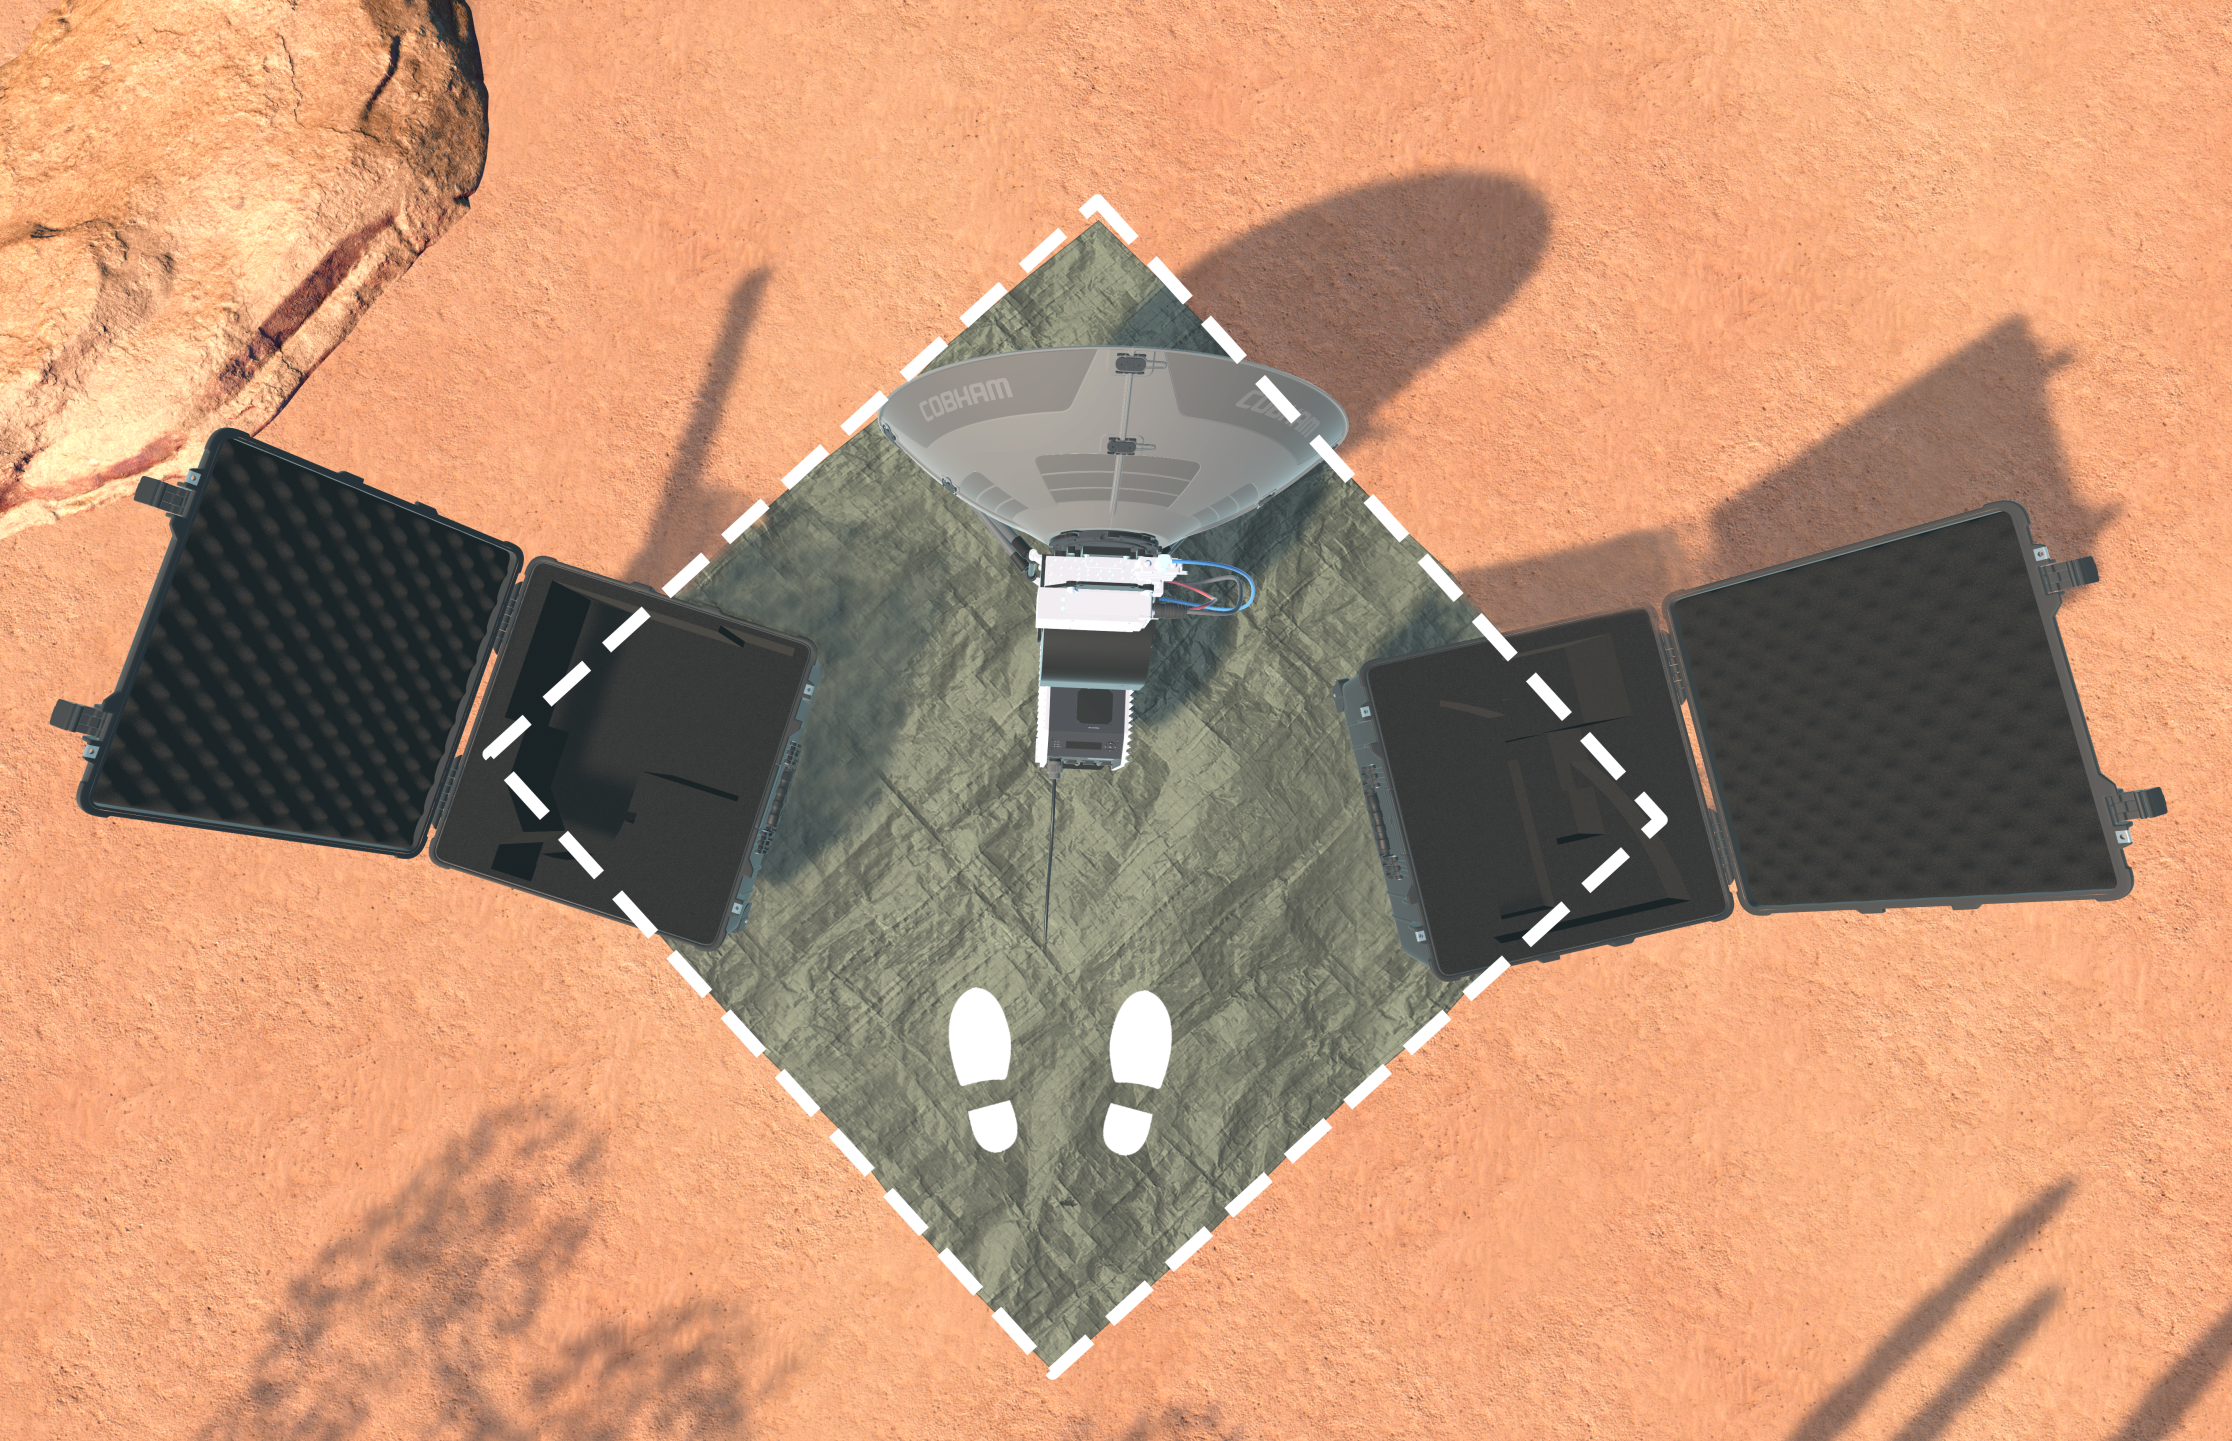 Top down view: Tarp helps mark play area (White markings are not visible in VR).